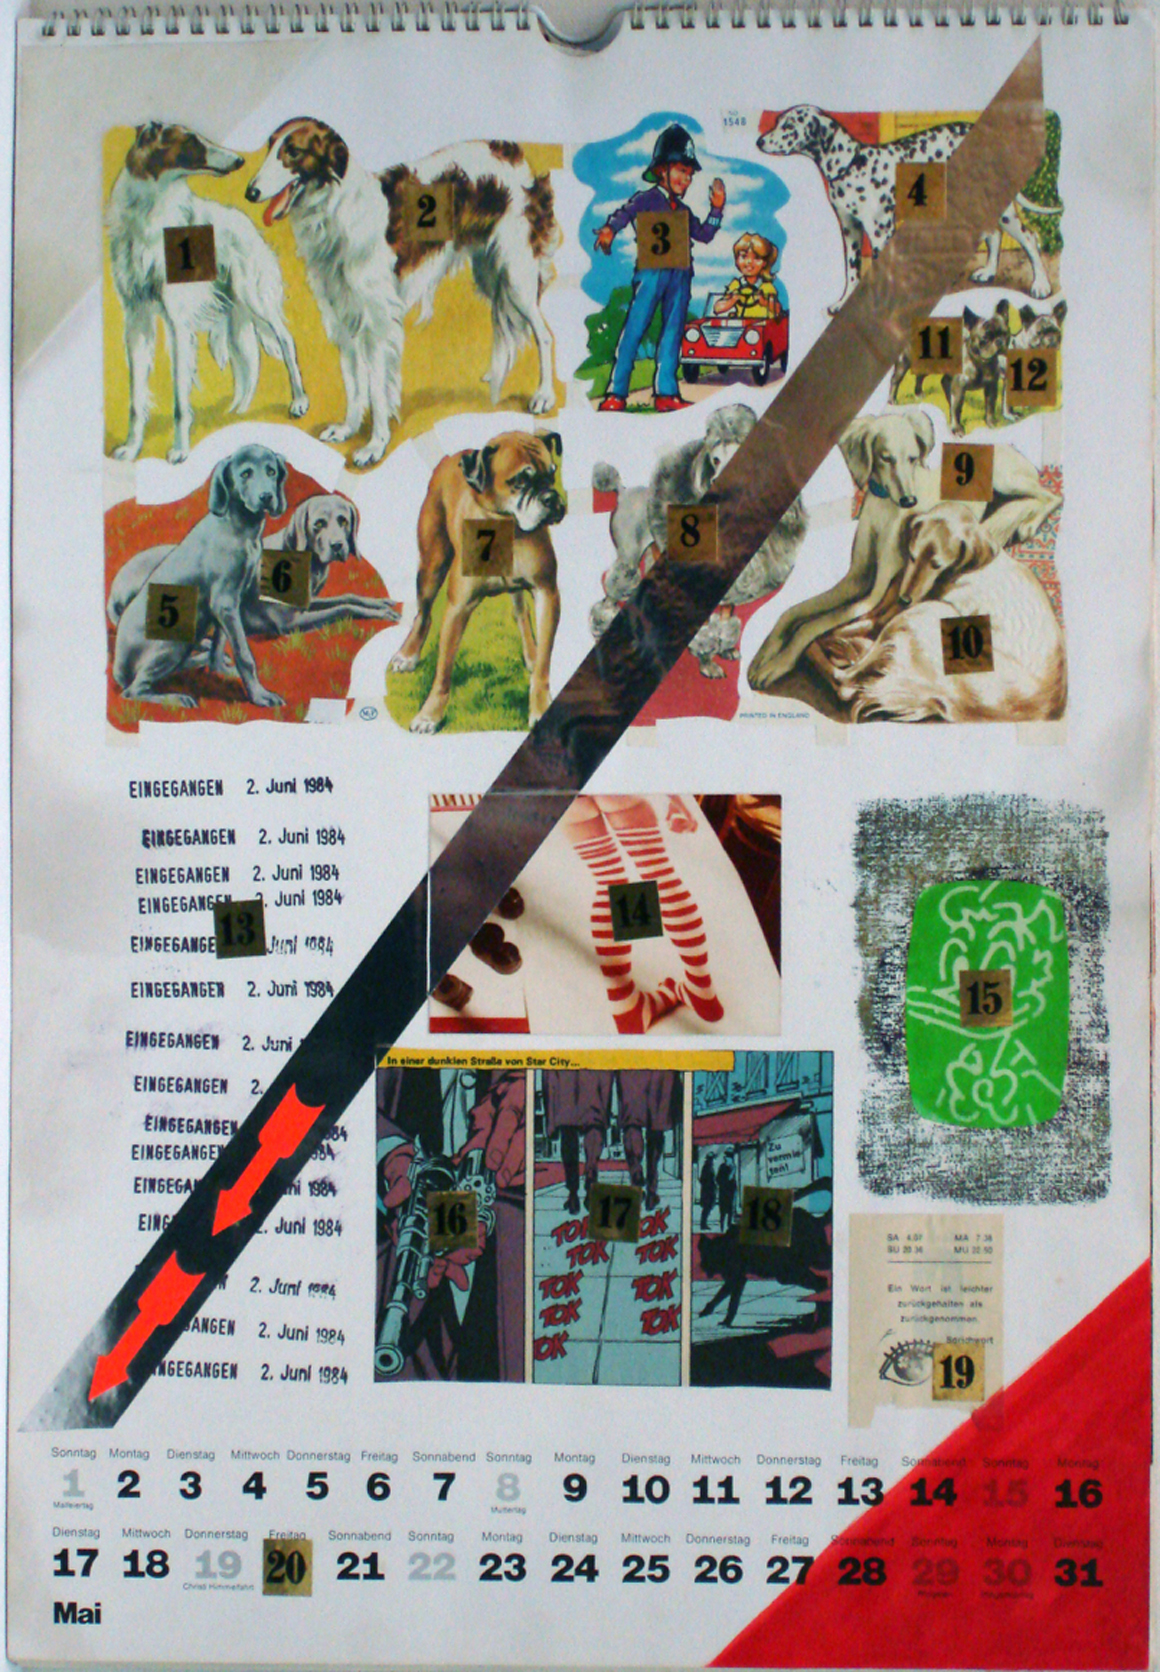 """<p><span class=""""name"""">Moritz Reichelt</span><br><em>Calendar 1977 May</em><span class='media'>collage</span>16 x 11.25 in (40.6 x 28.6 cm)<br>20.75 x 16.75 in (52.7 x 42.5 cm) Framed (framed)<br>1977<br><a class='inquire' href='mailto:info@gildargallery.com?subject=Artwork Inquiry MREI0014&body=I am interested in finding out more about Calendar 1977 May by Moritz Reichelt'>Inquire</a></p>"""